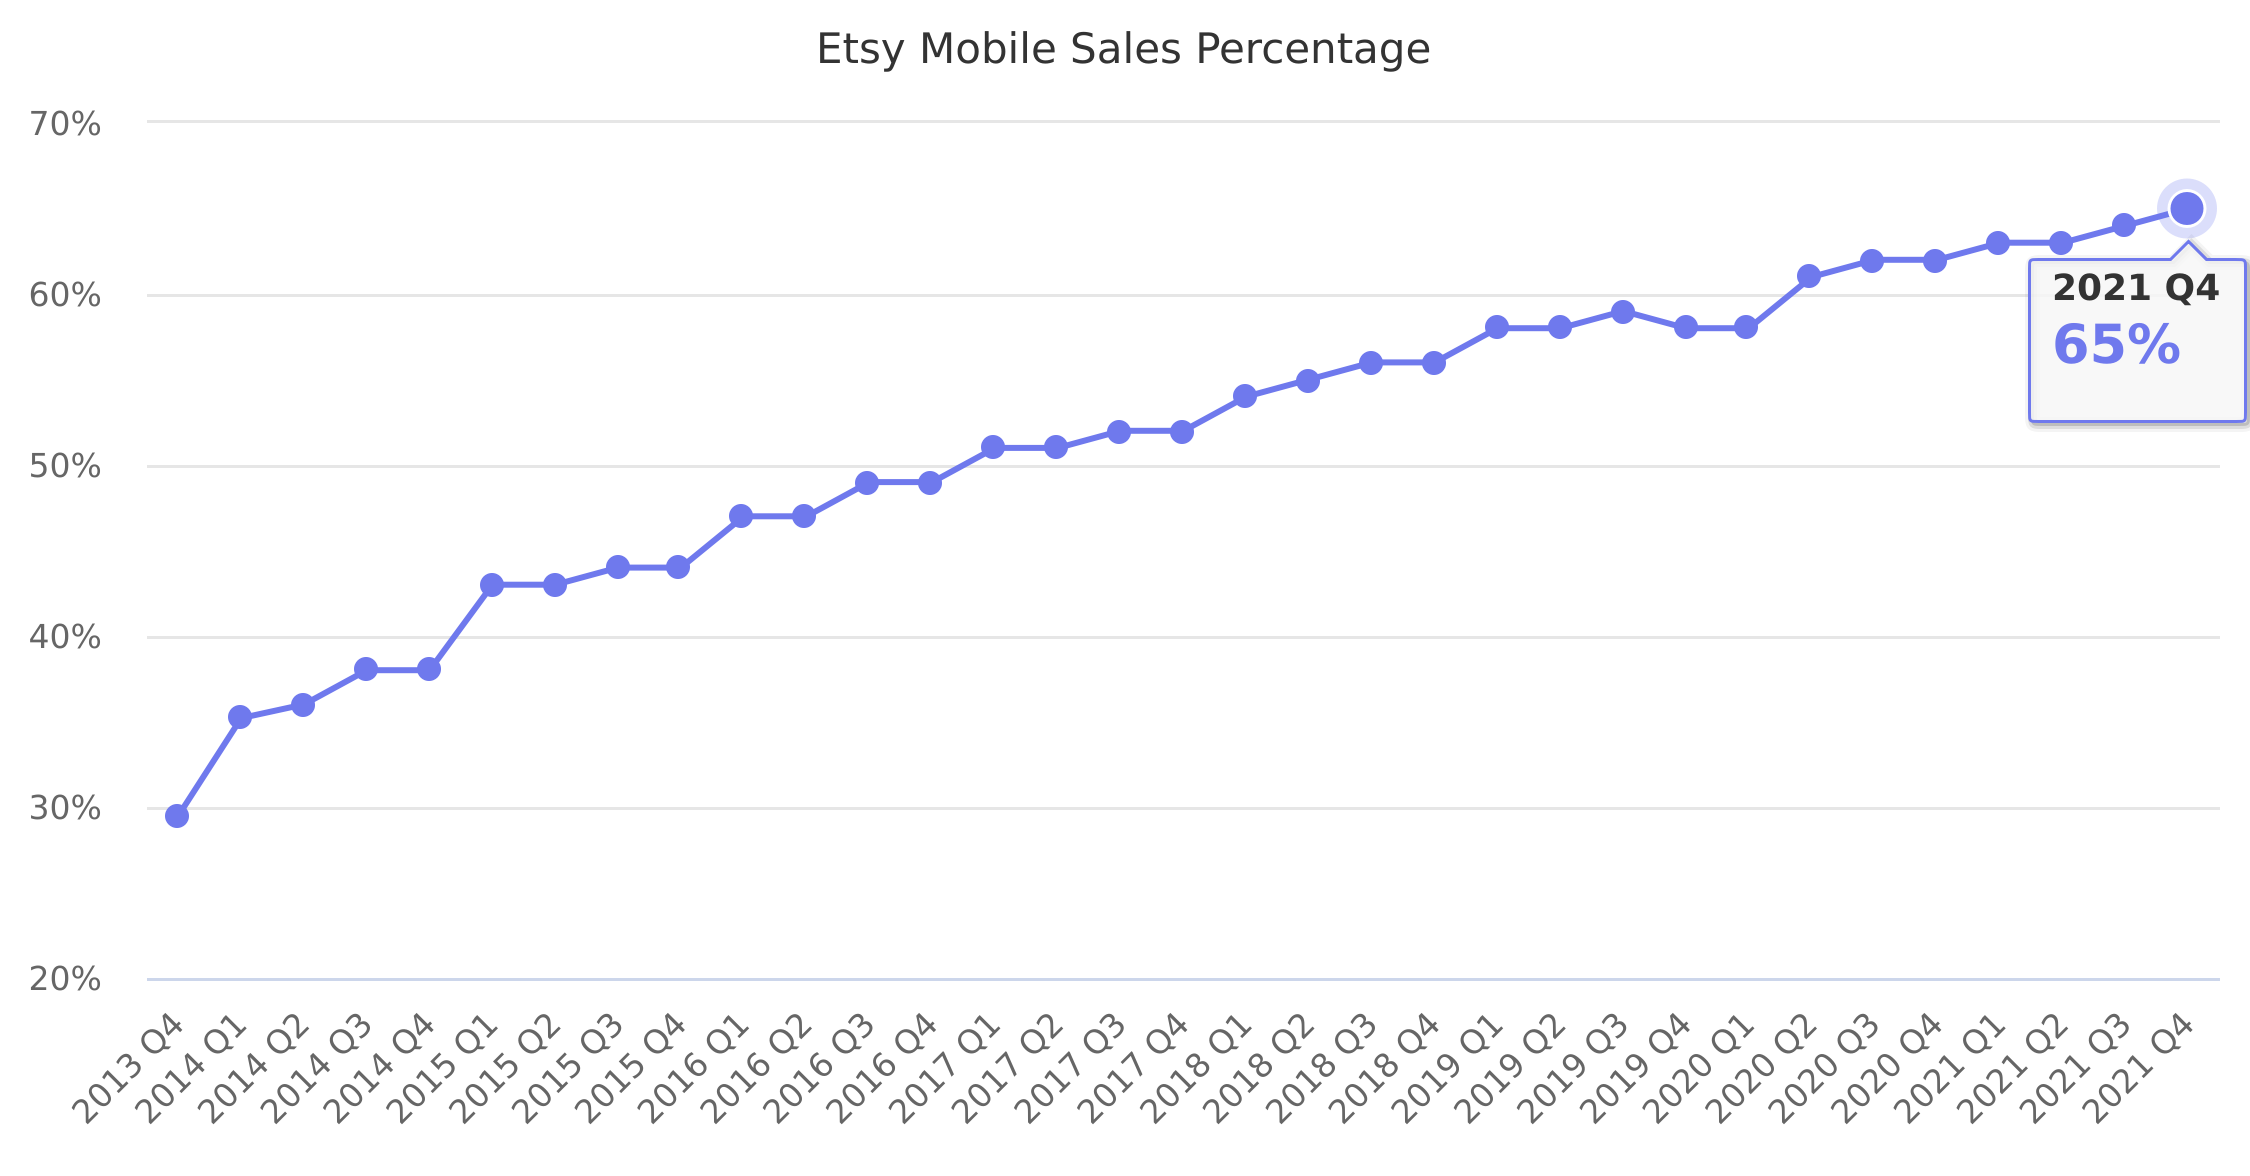 Etsy Mobile Sales Percentage 2013-2018